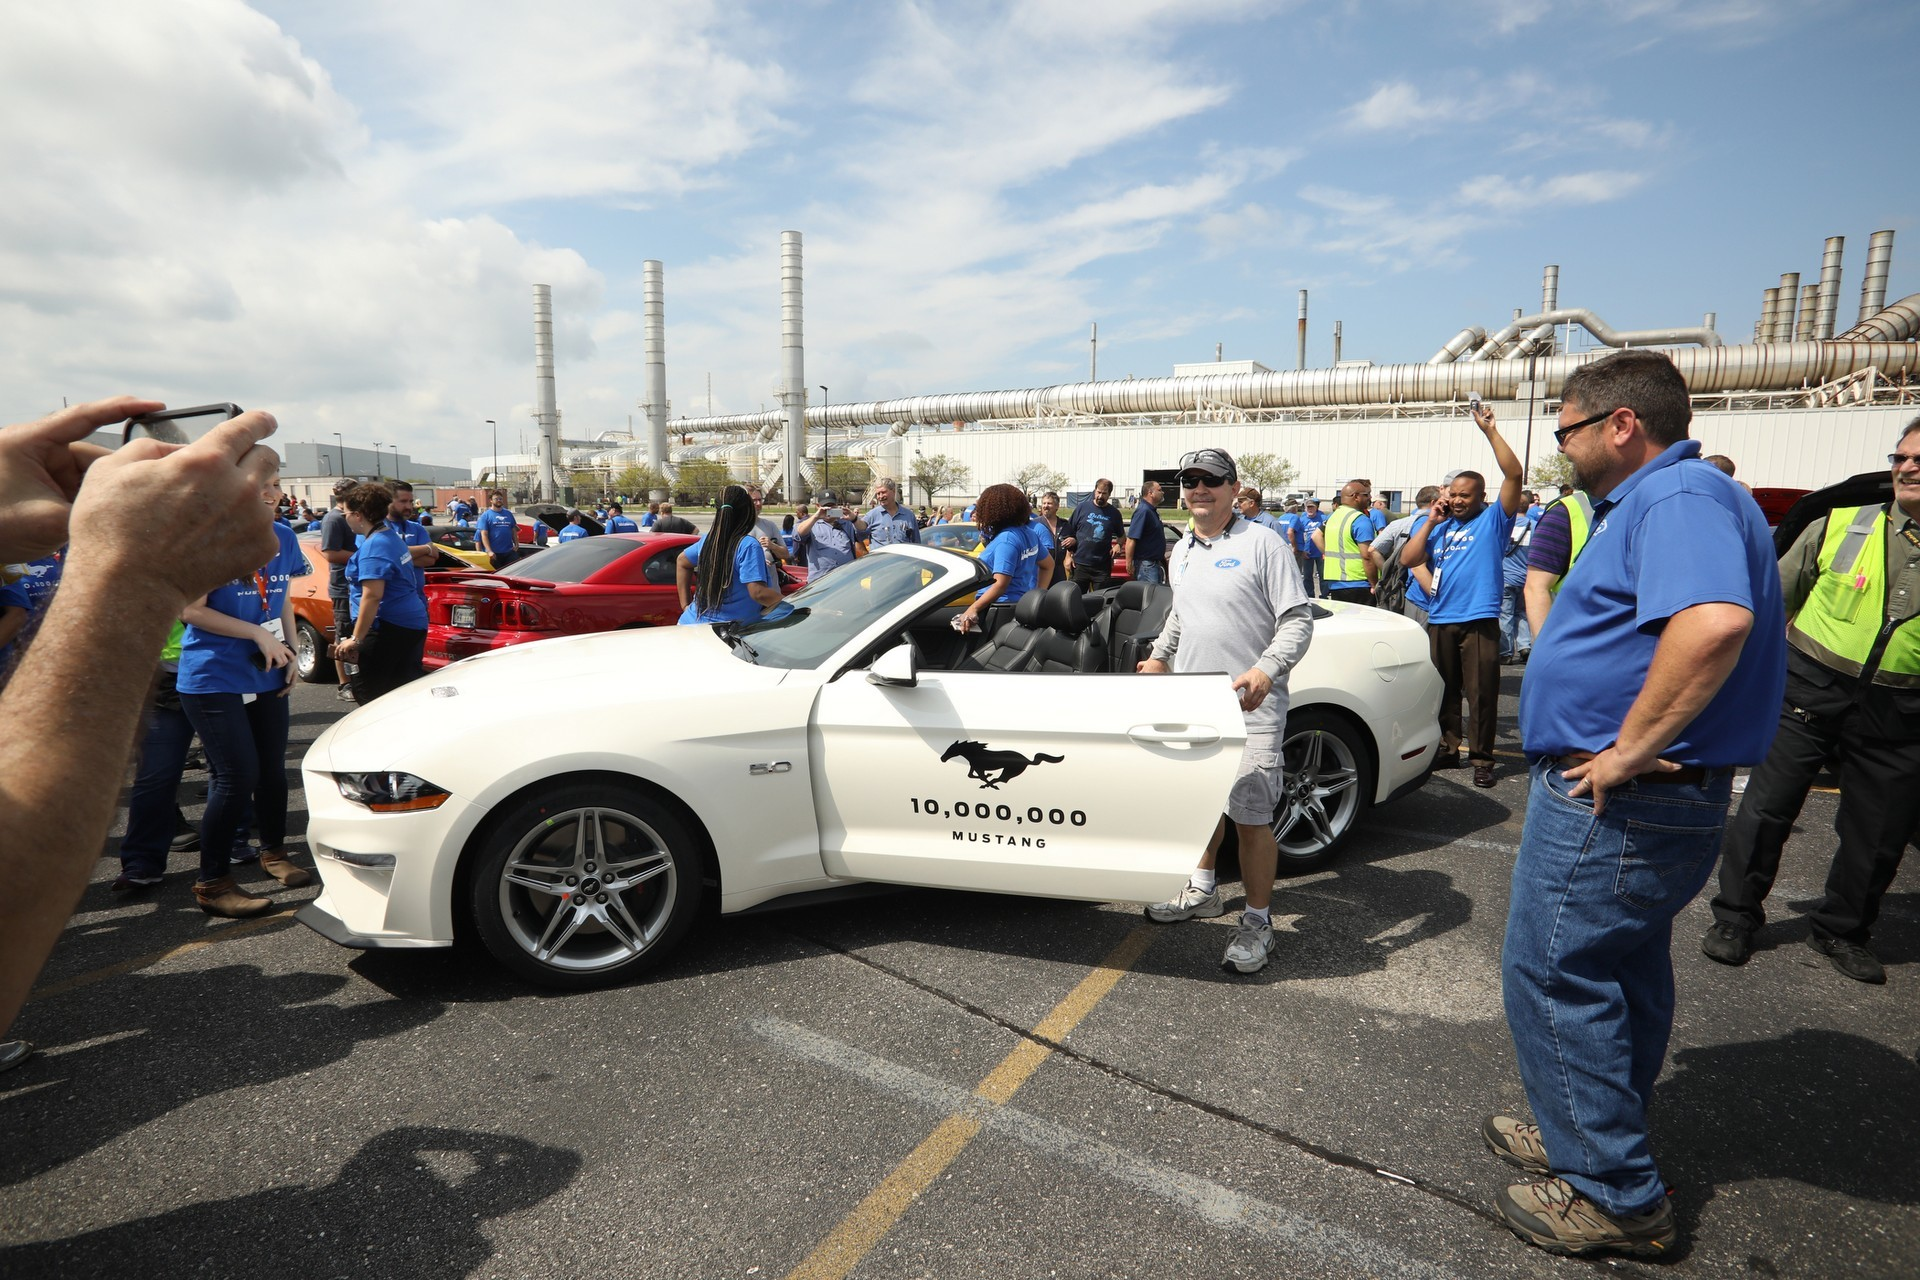 Ford Mustang 10 million (12)